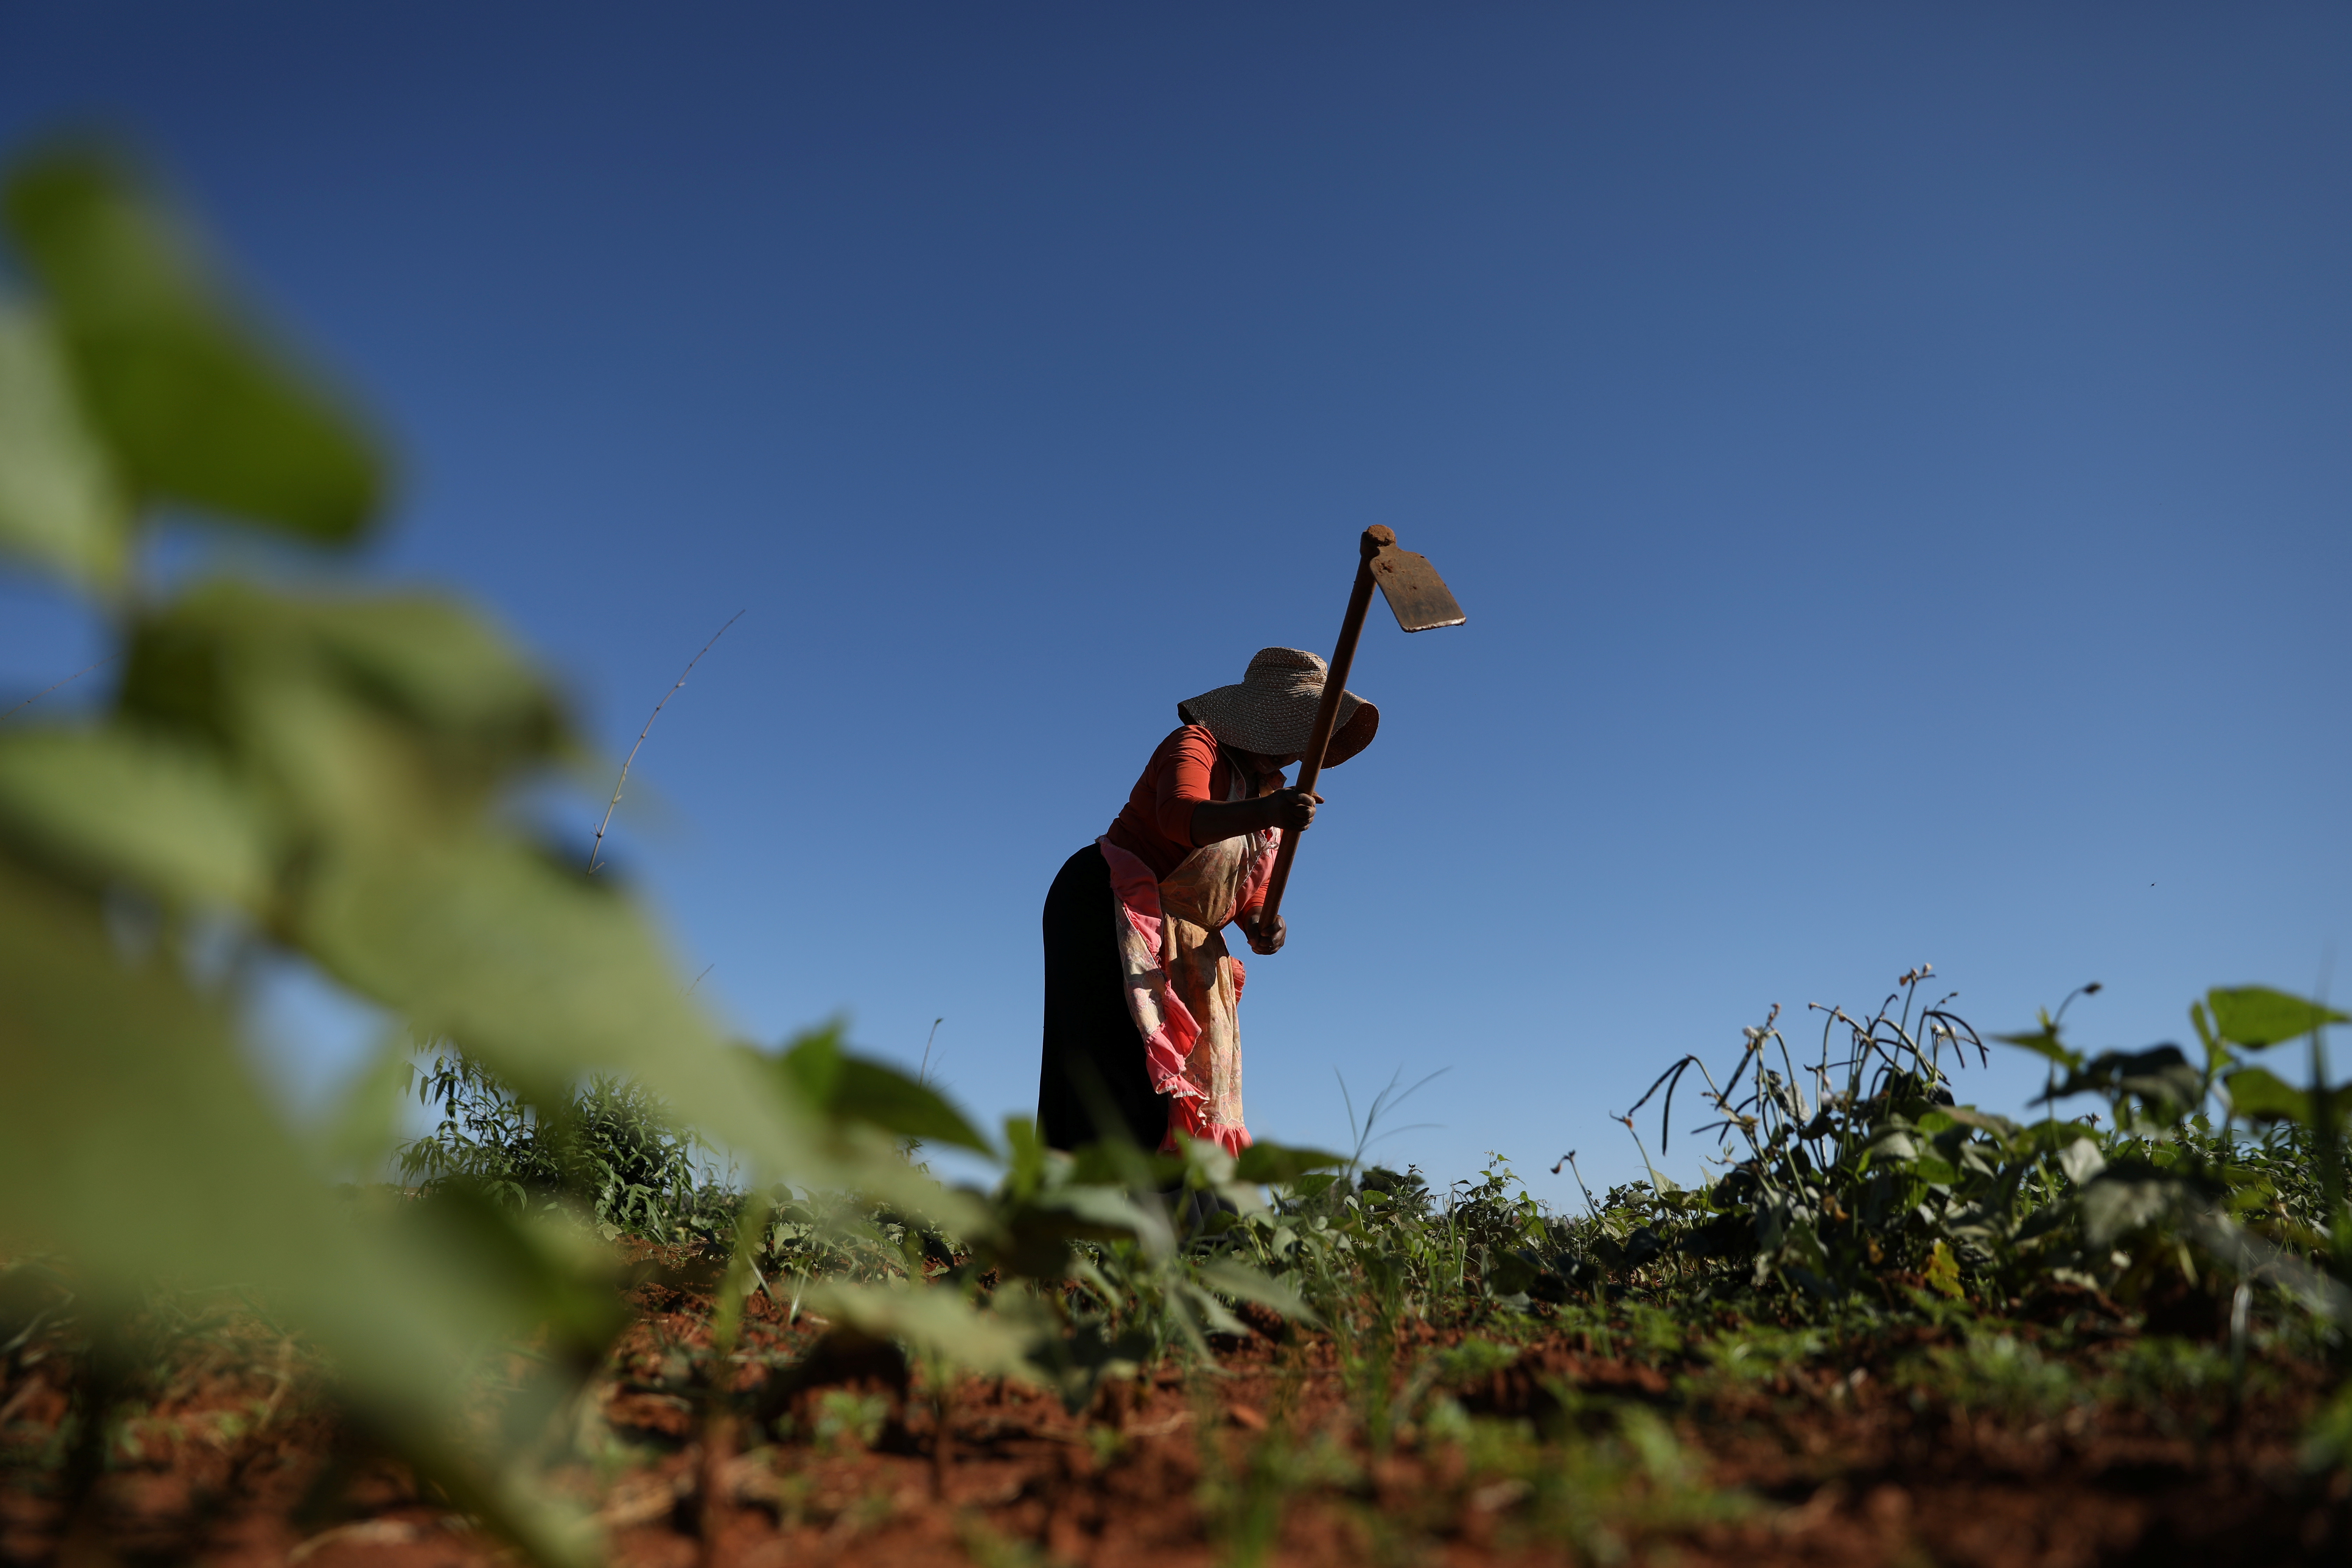 NobuthoThethani, a local farmer works the land at Lawley informal settlement in the south of Johannesburg, South Africa